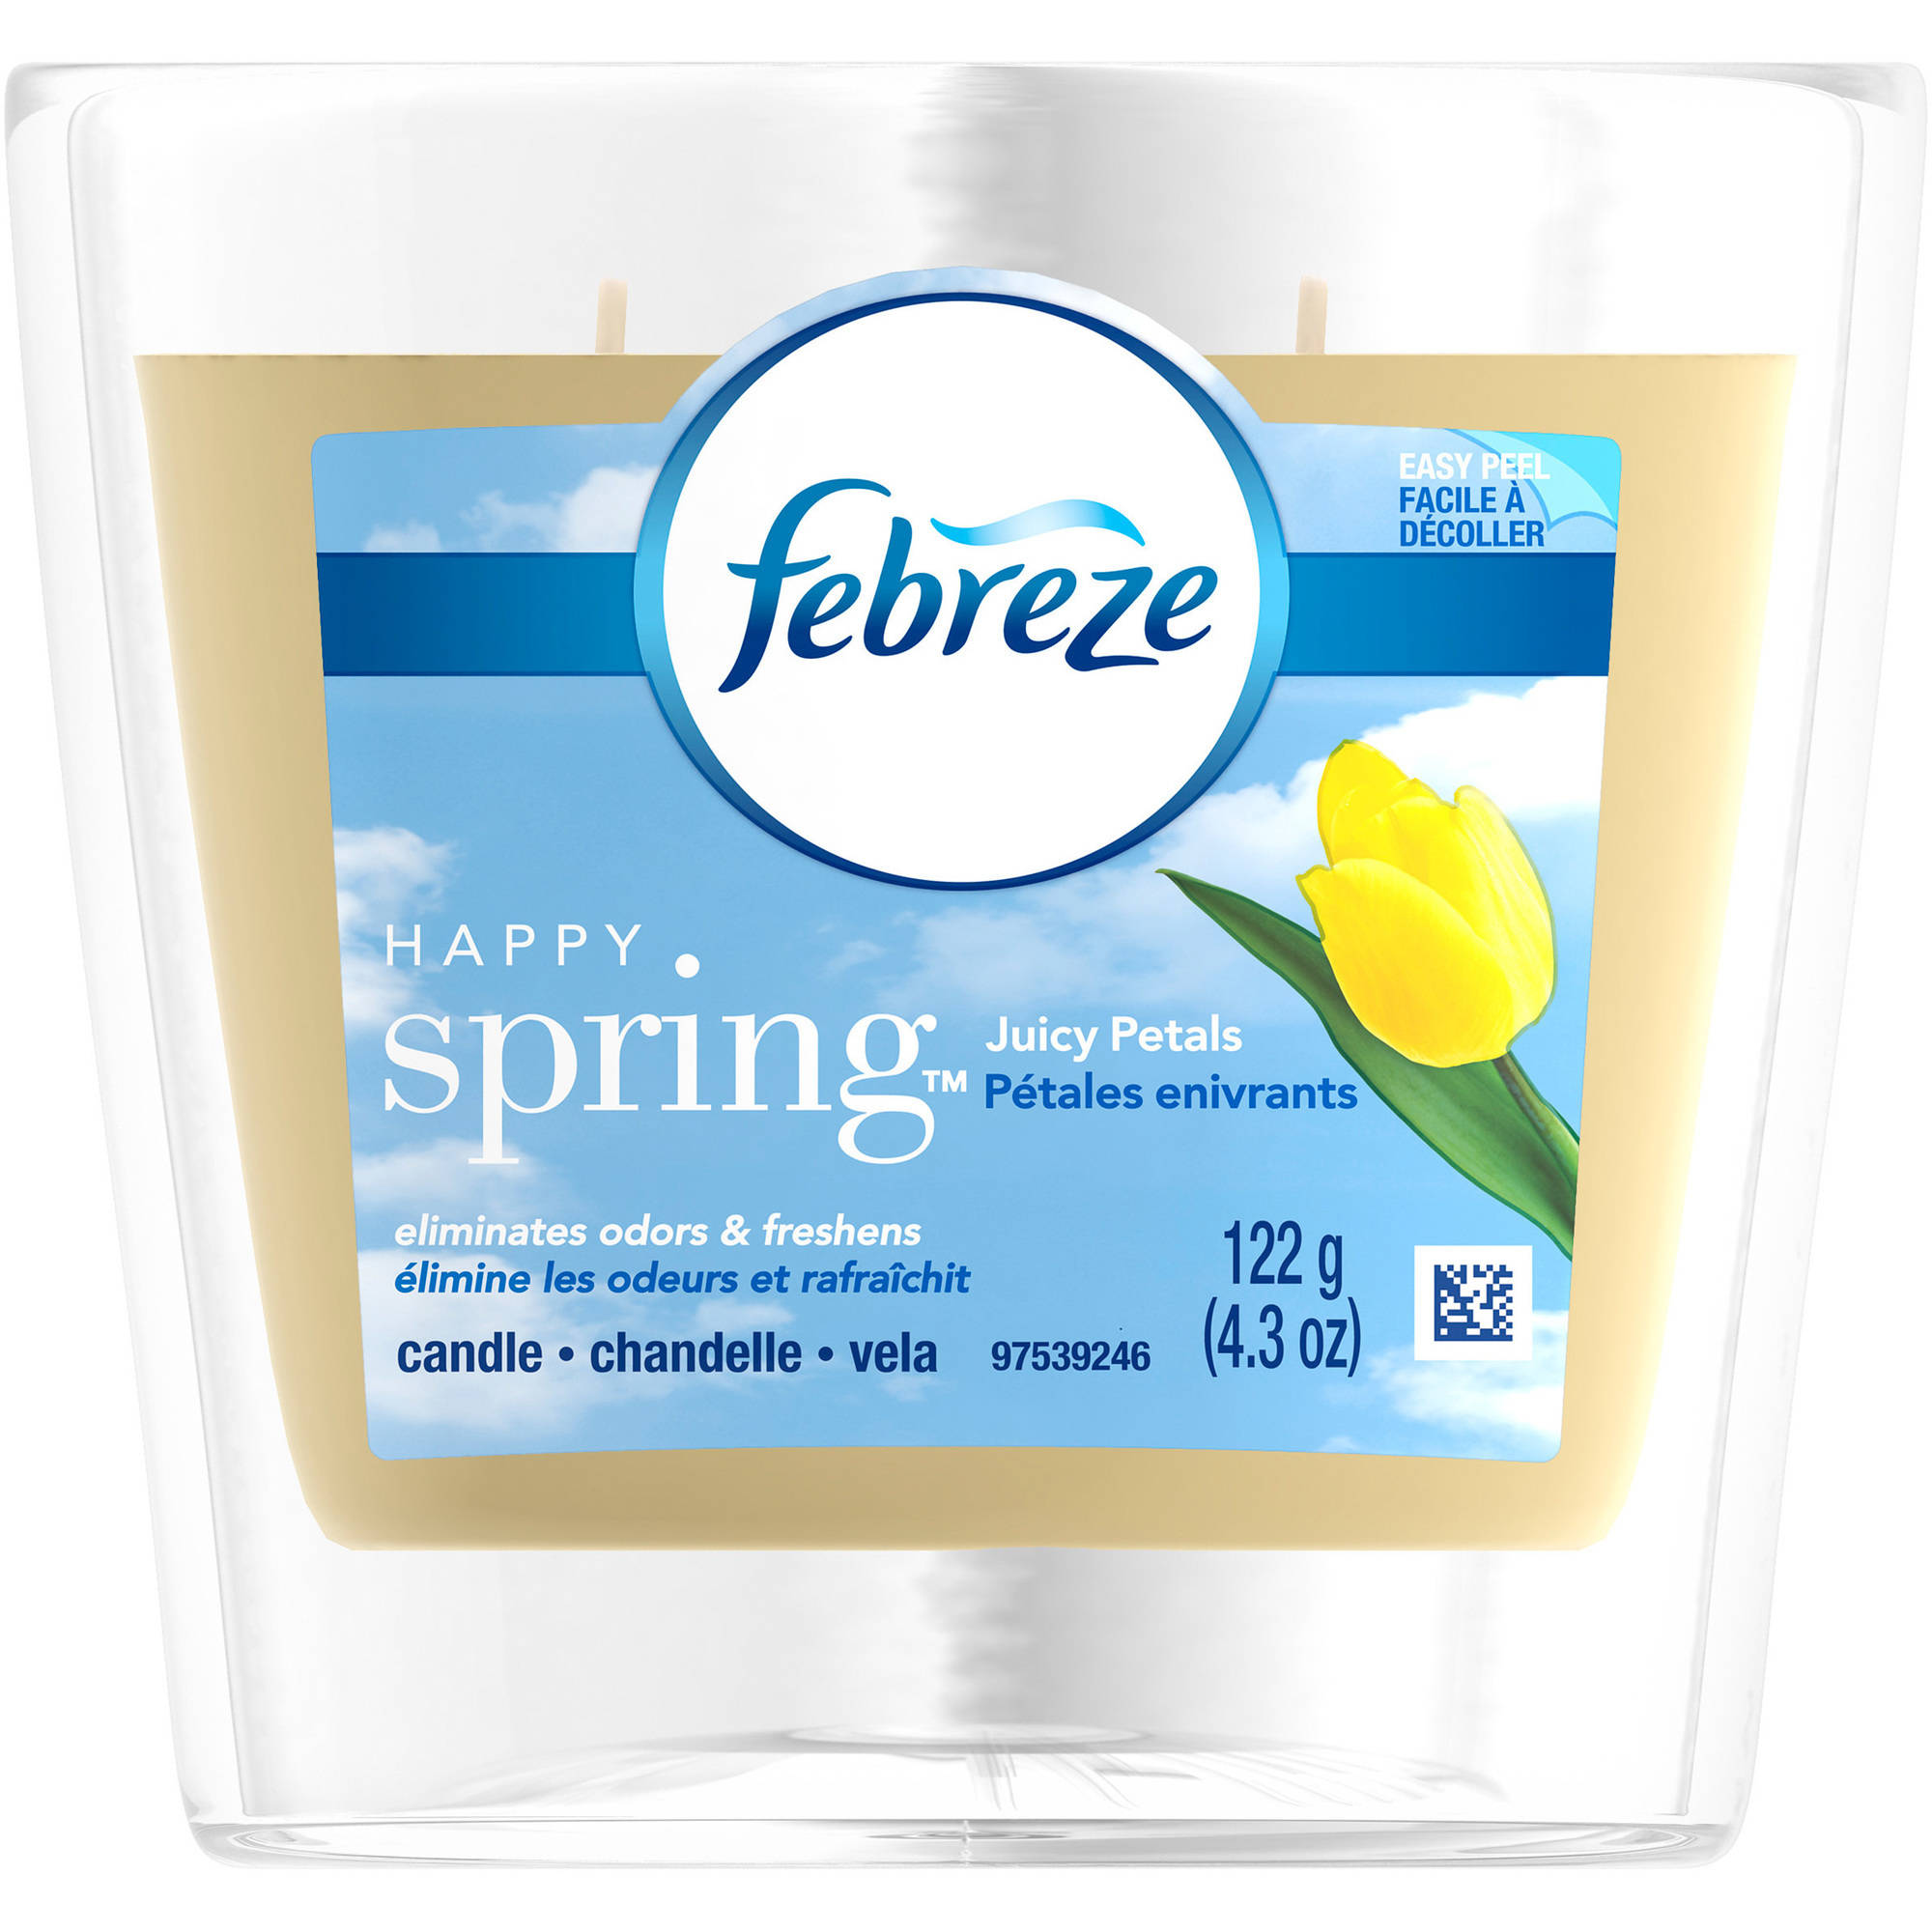 Febreze Happy Spring Juicy Petals Air Freshener Candle, 4.3 oz